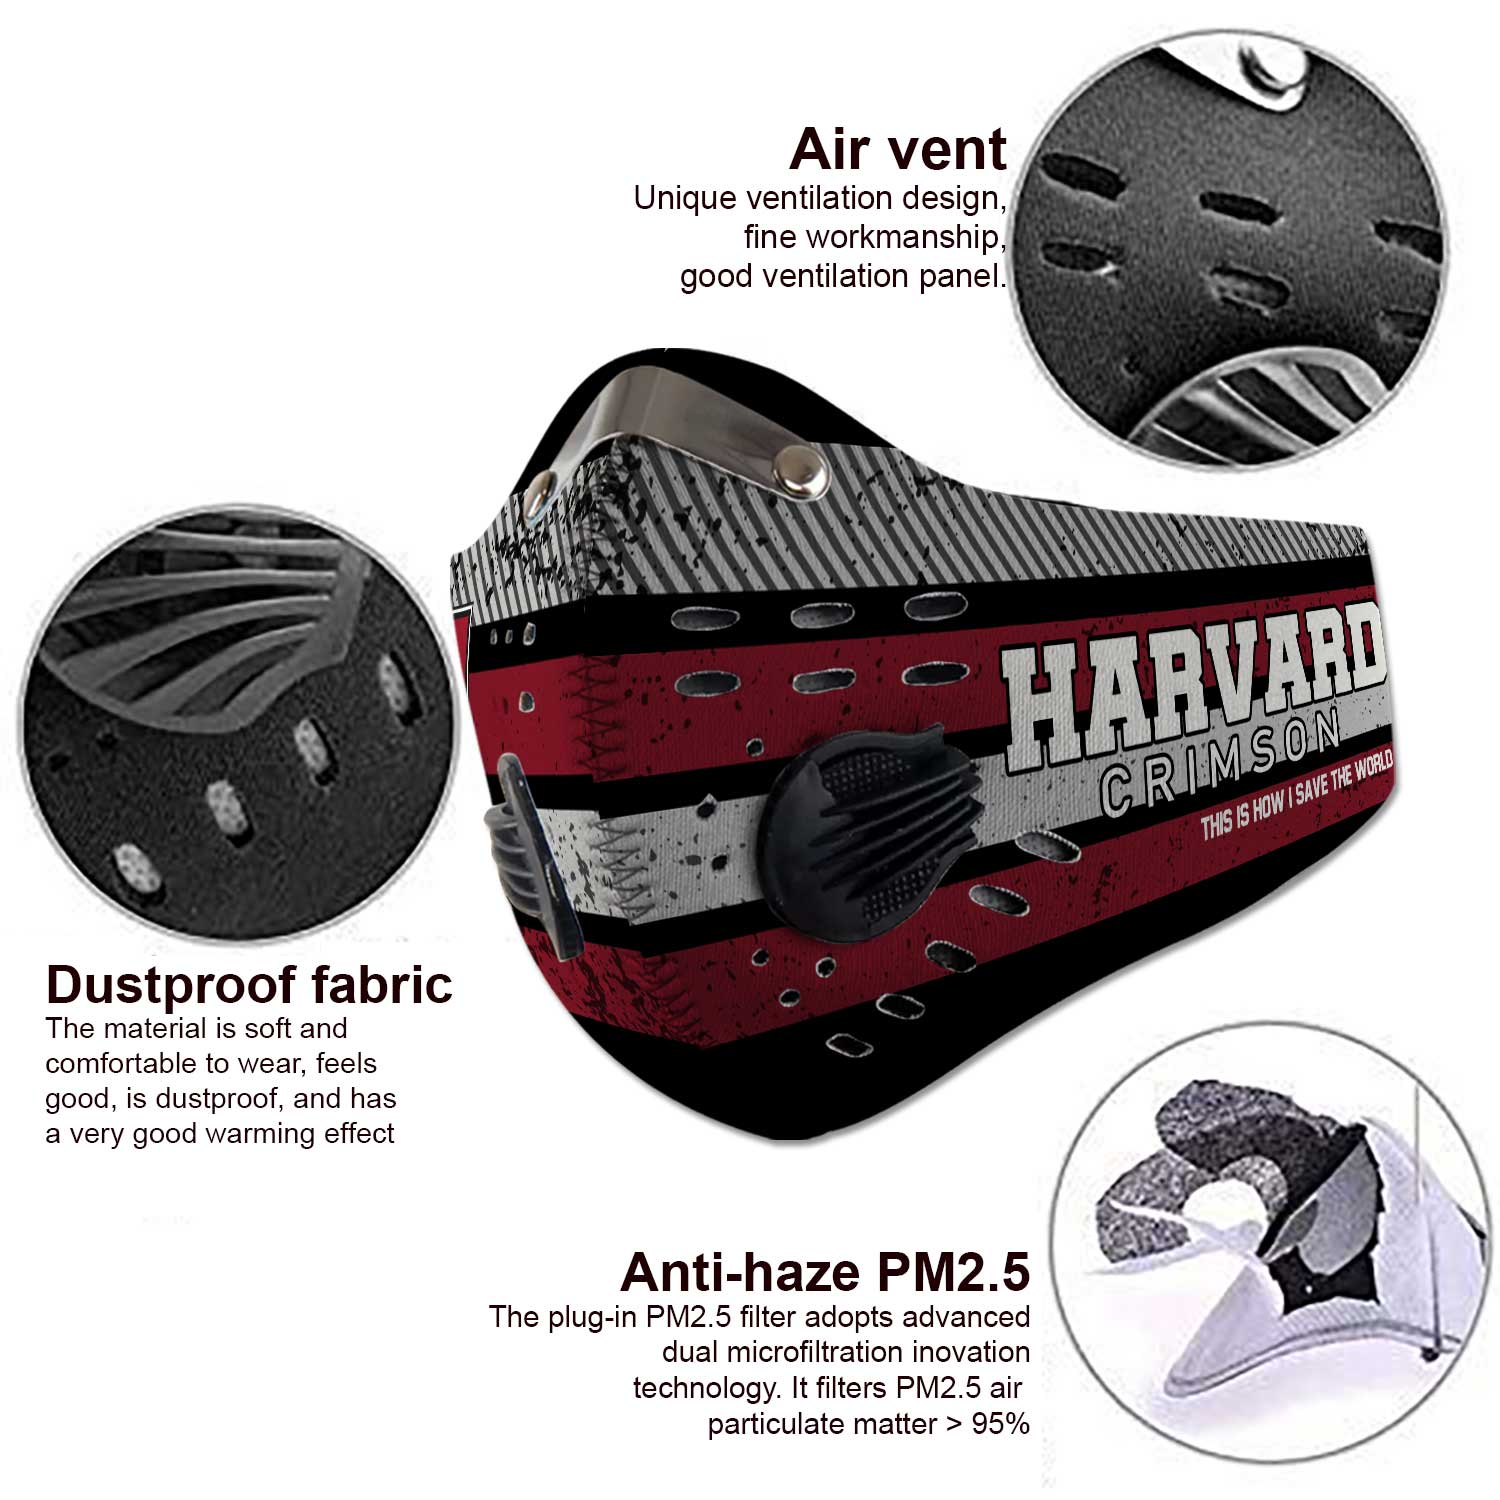 Harvard crimson this is how i save the world carbon filter face mask 3